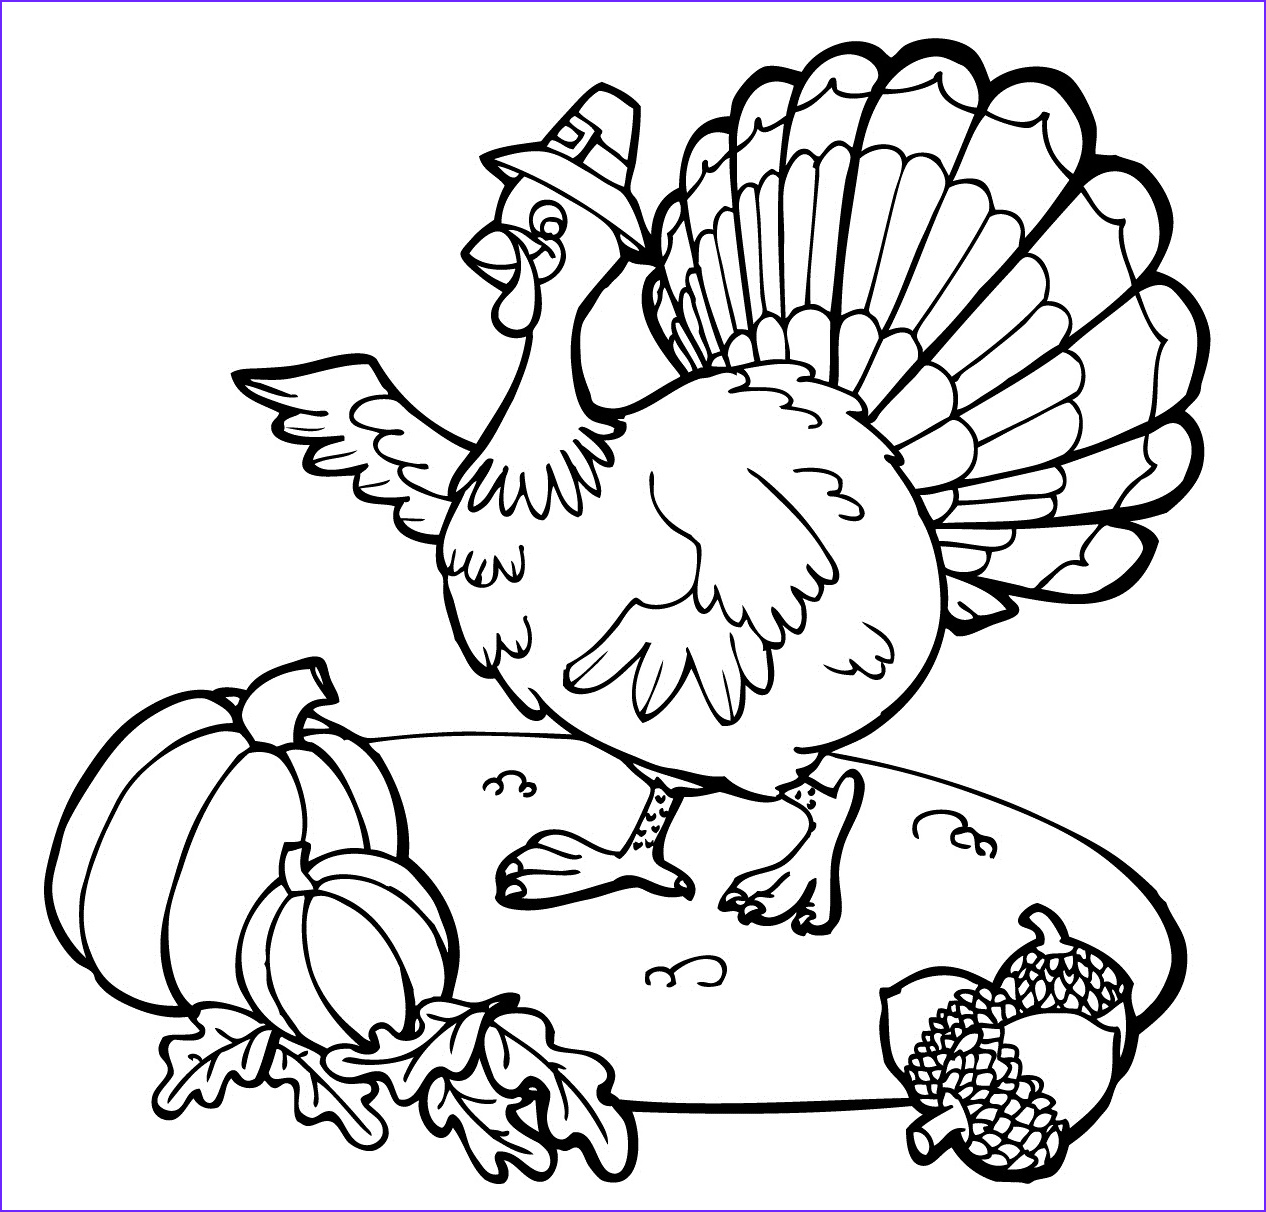 Thanksgiving Coloring Page for toddlers Best Of Photos Free Printable Thanksgiving Coloring Pages for Kids